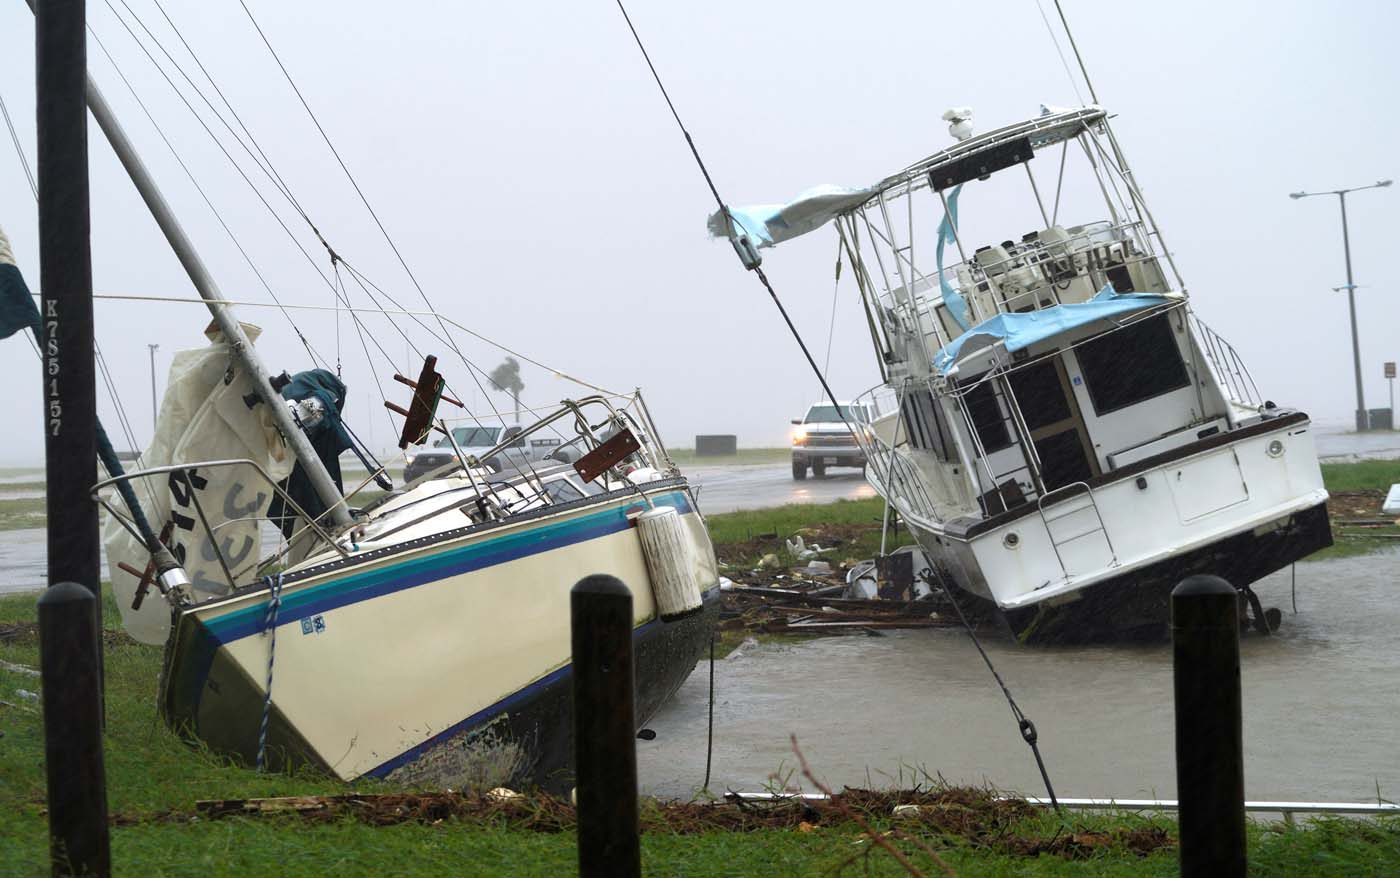 Boats are pushed ashore by Hurricane Harvey in Port Lavaca, Texas, August 26, 2017. REUTERS/Rick Wilking